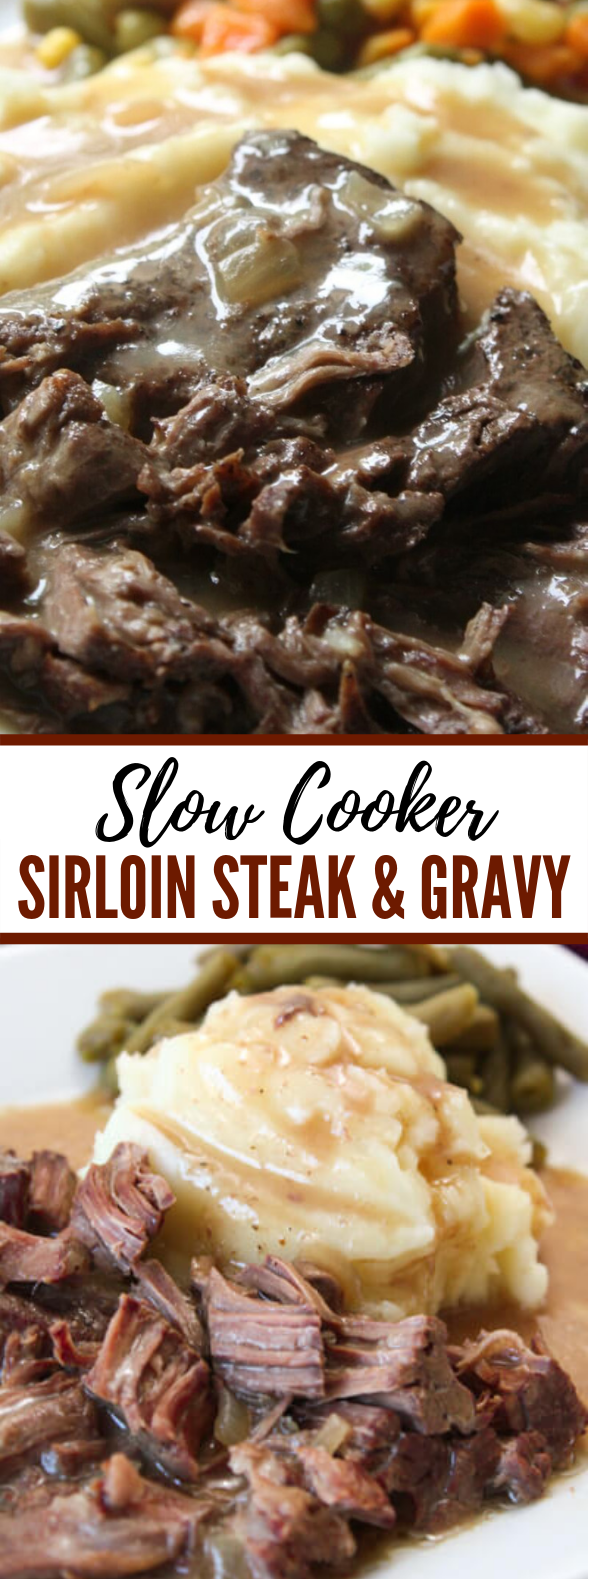 Slow Cooker Sirloin Steak and Gravy #dinner #comfortfood